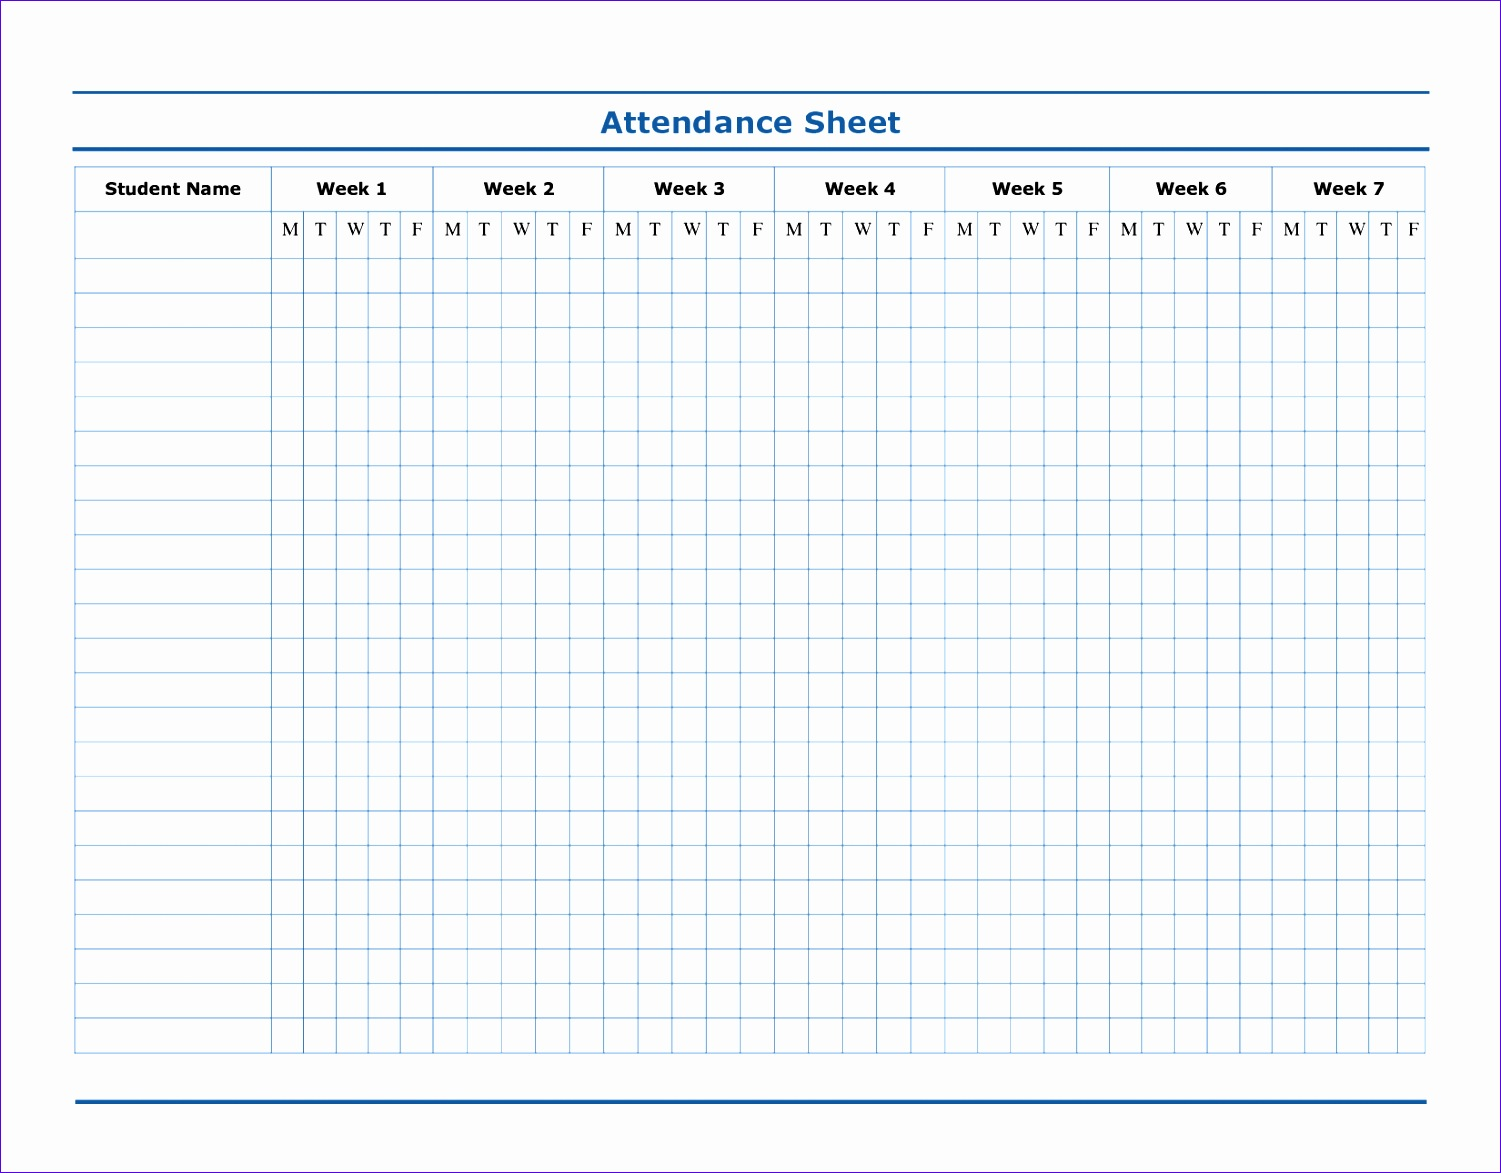 Pretty attendance roster template excel contemporary entry level 12 attendance roster template excel exceltemplates exceltemplates alramifo Gallery